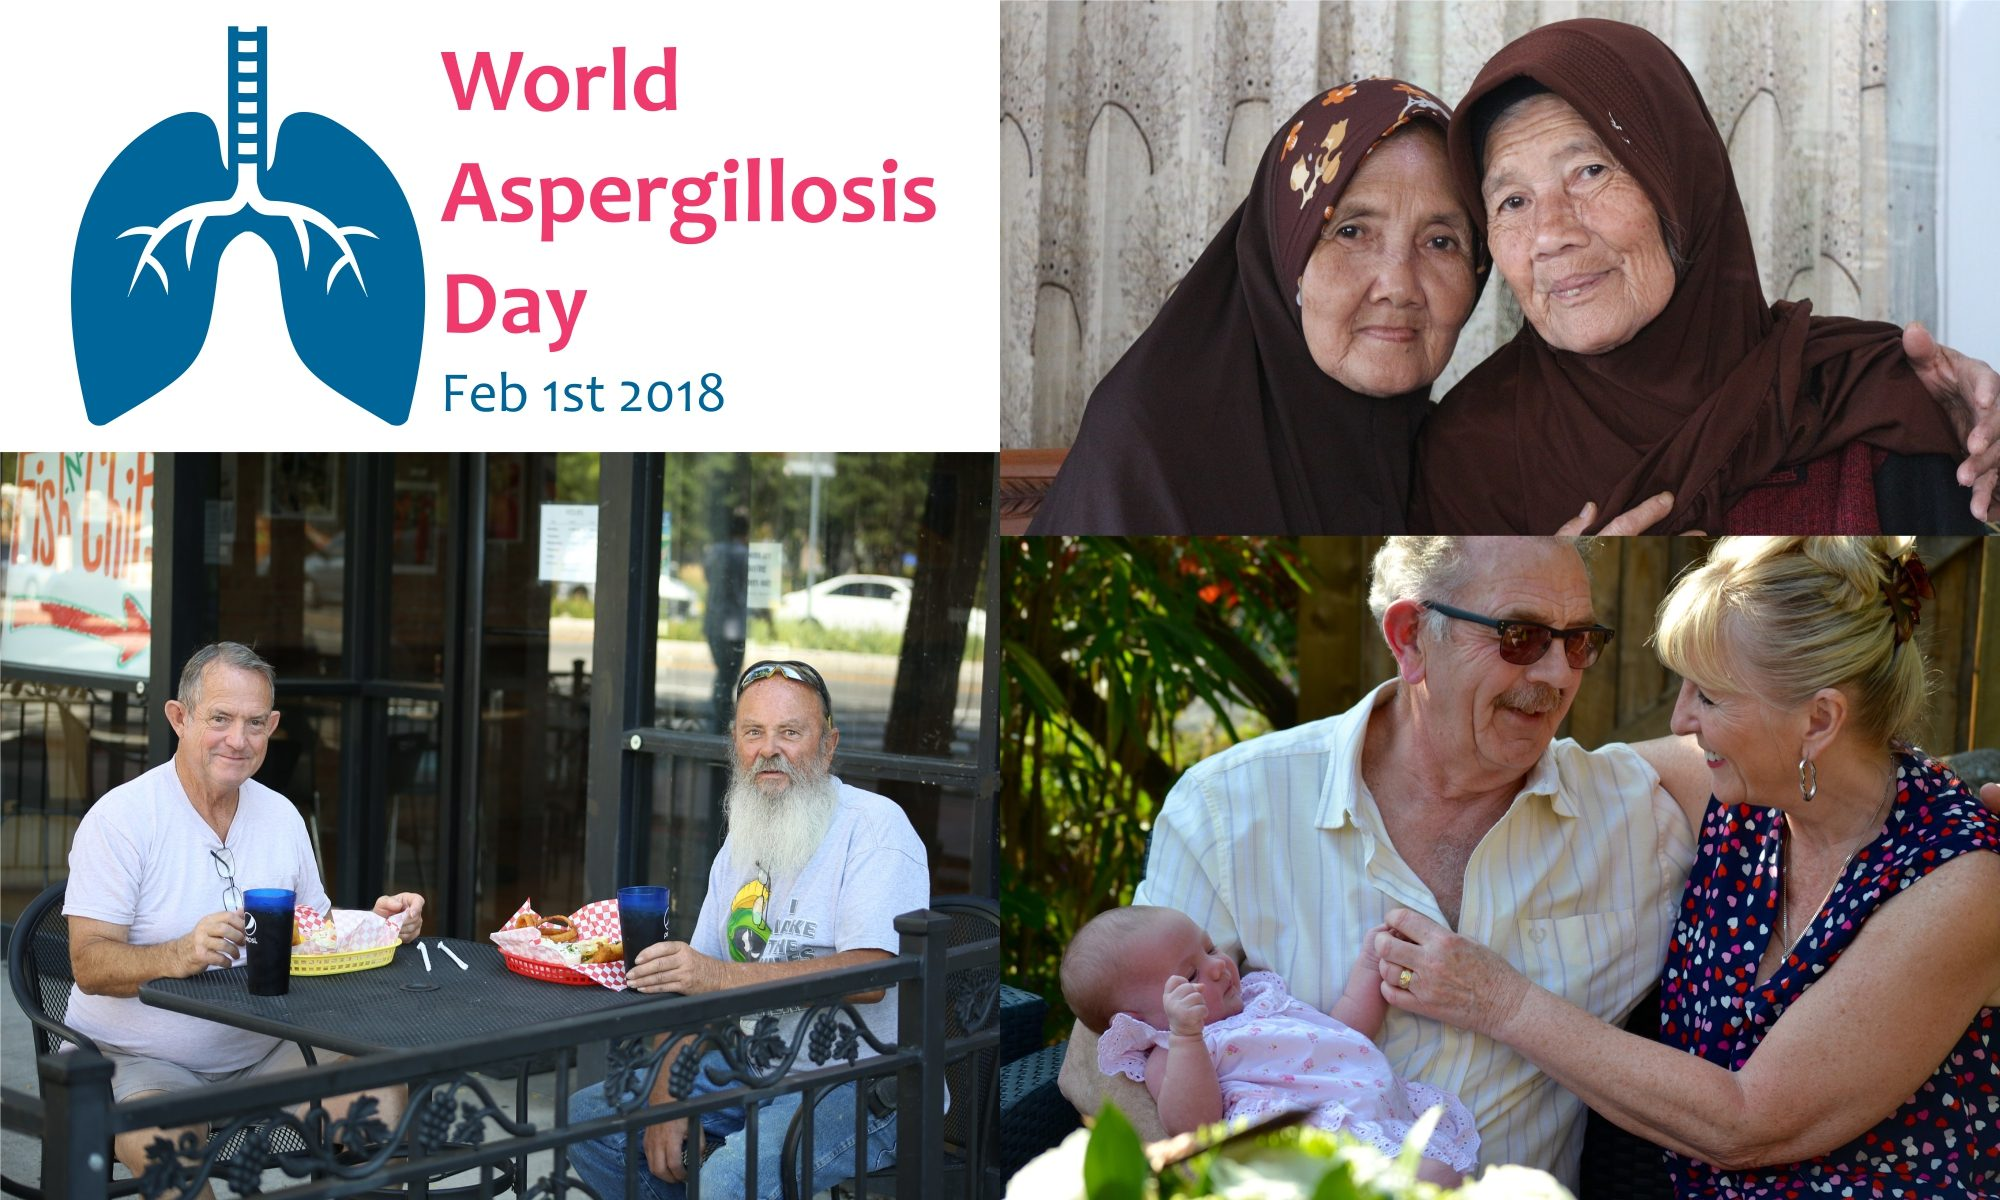 World Aspergillosis Day